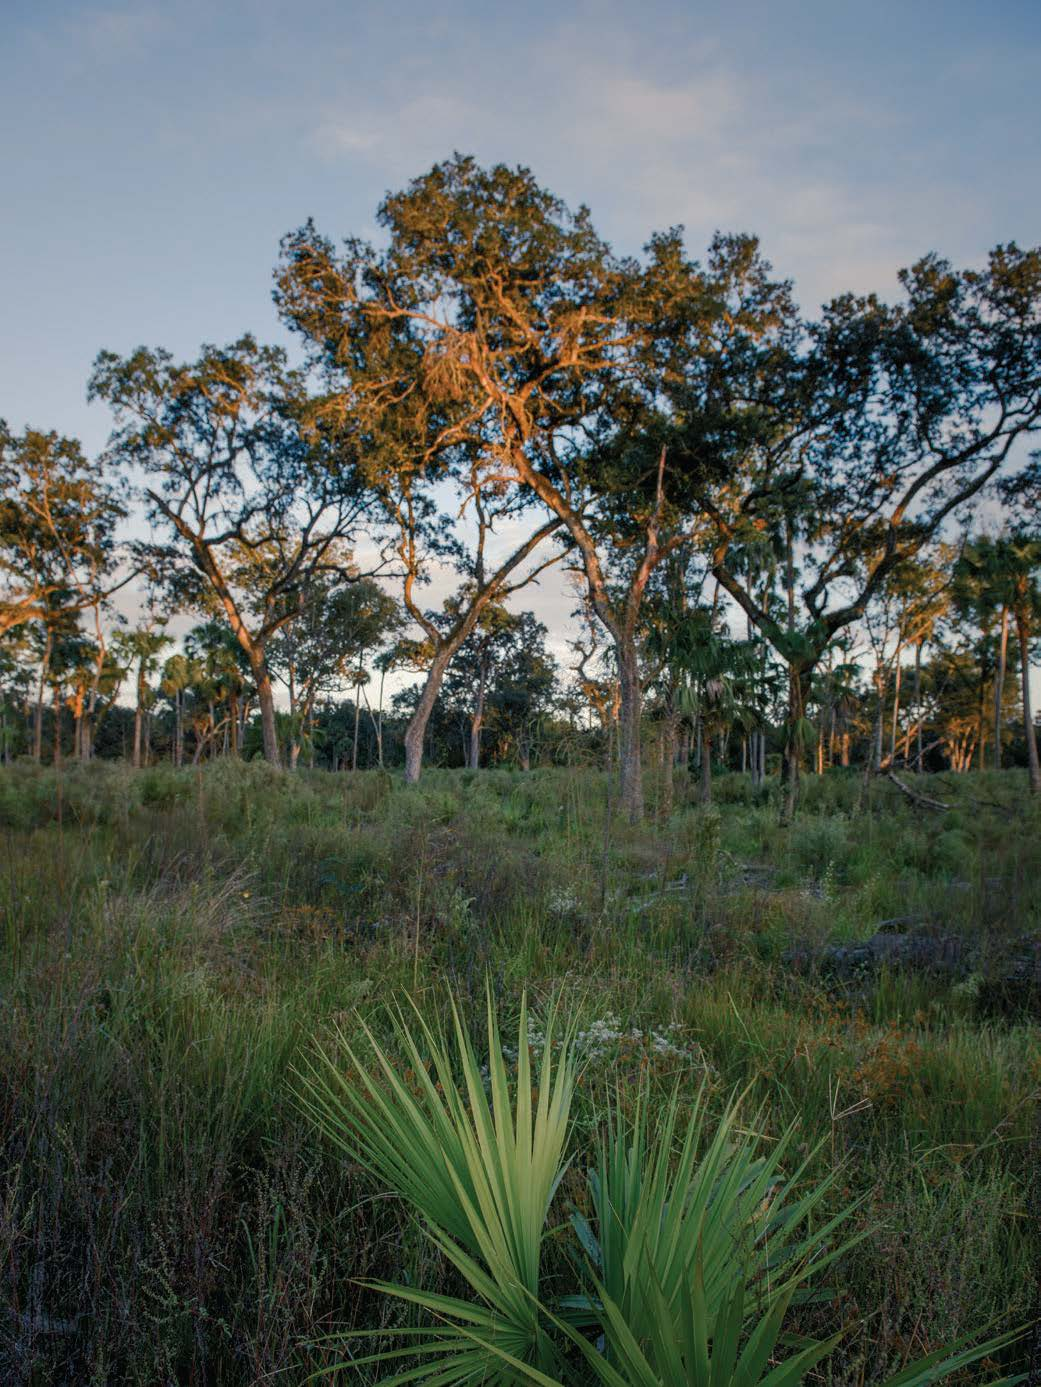 A view from the Silver Springs Forest Conservation Area. CTF helped protect this 4,900-acre property in 2015. It is now owned and managed by the St. Johns River Water Management District. Photo by Carlton Ward Jr.